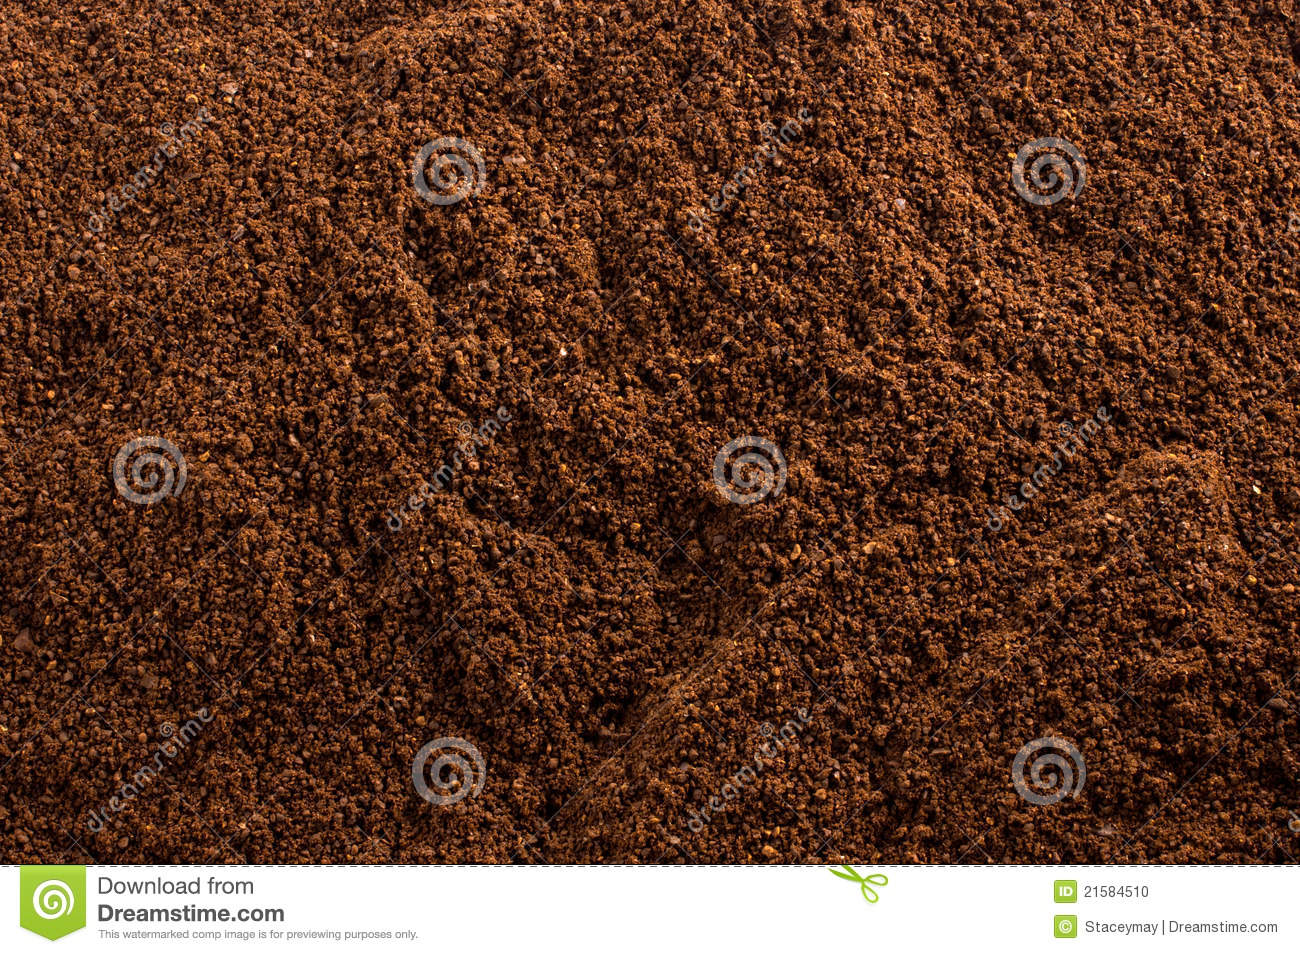 ground coffee stock photo - photo #30